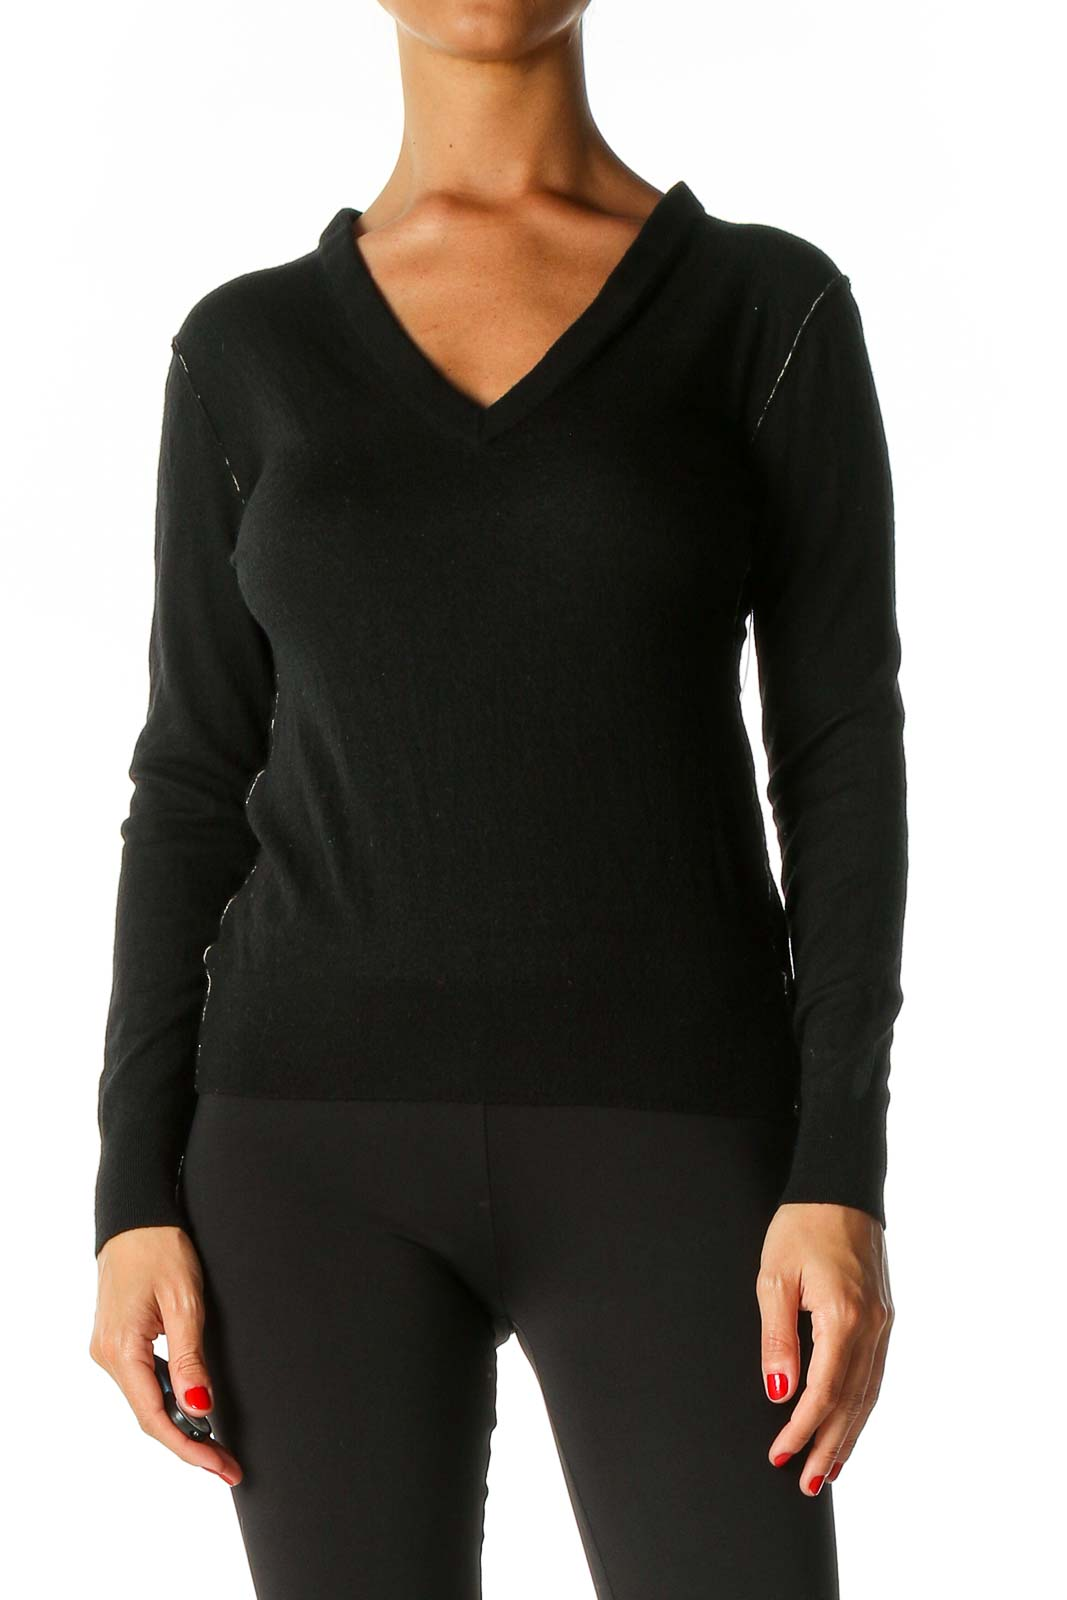 Black Solid Casual Sweater Front